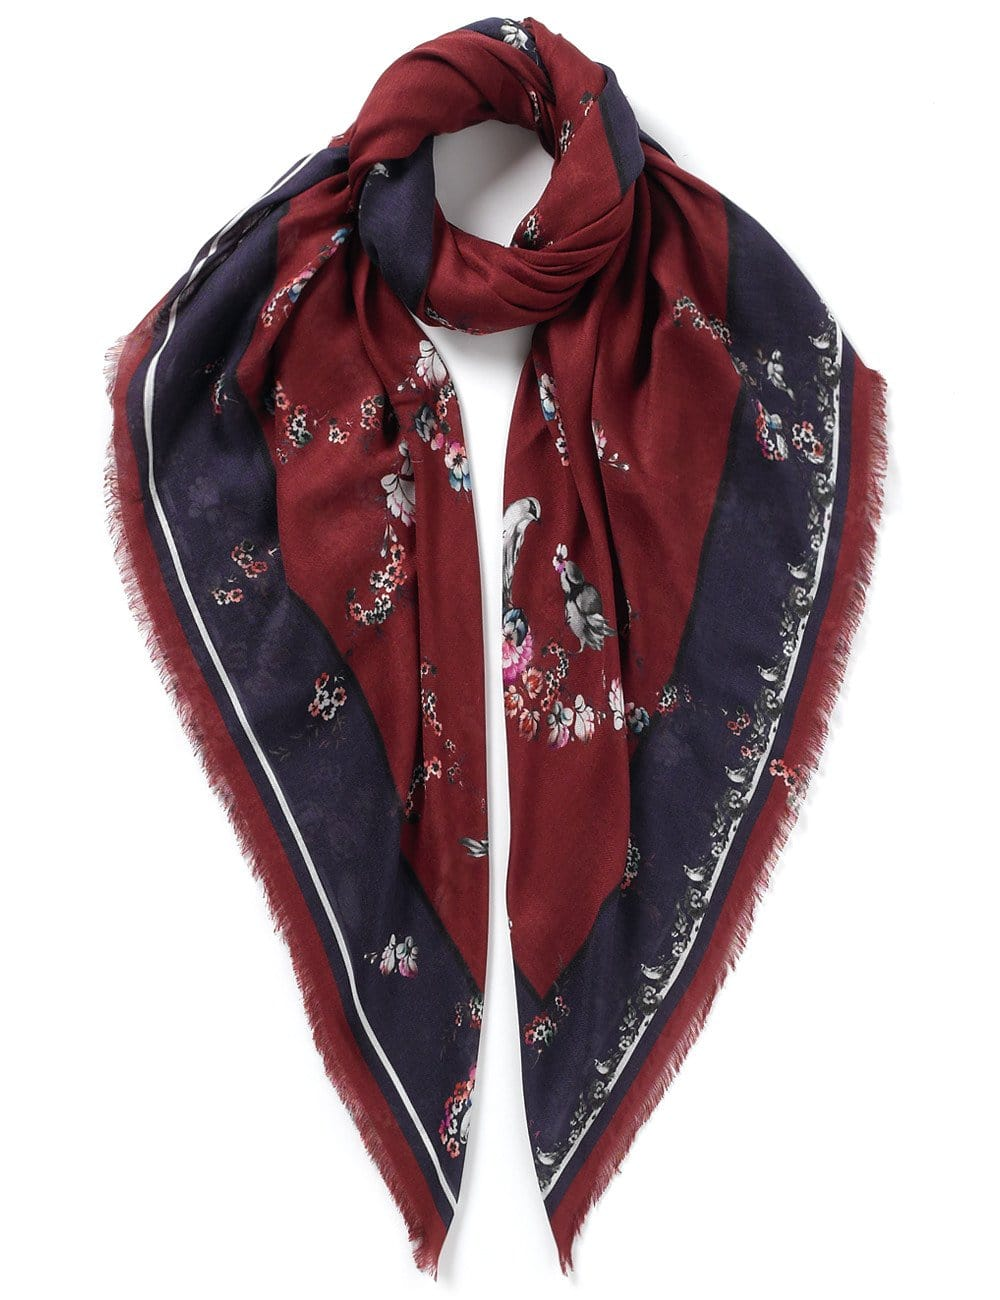 Vassilisa: Floral and birds print scarf burgundy | Accessories > Scarves,Accessories -  Hiphunters Shop